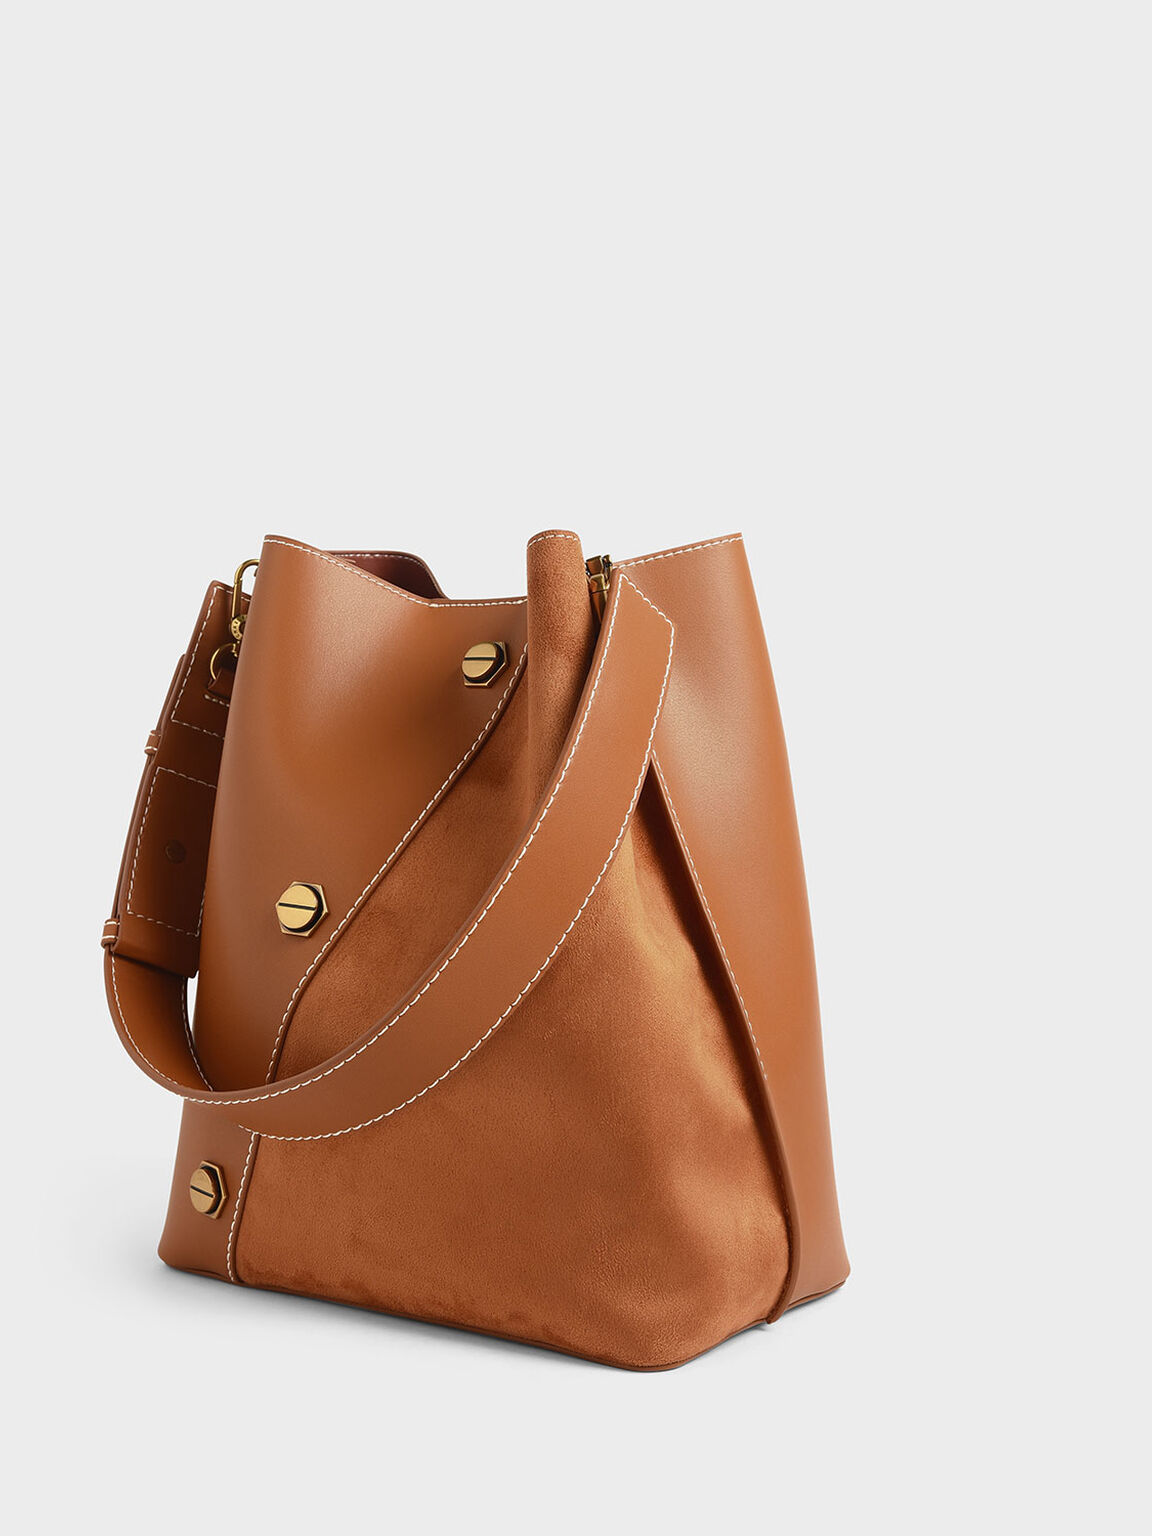 Studded Textured Hobo Bag, Tan, hi-res